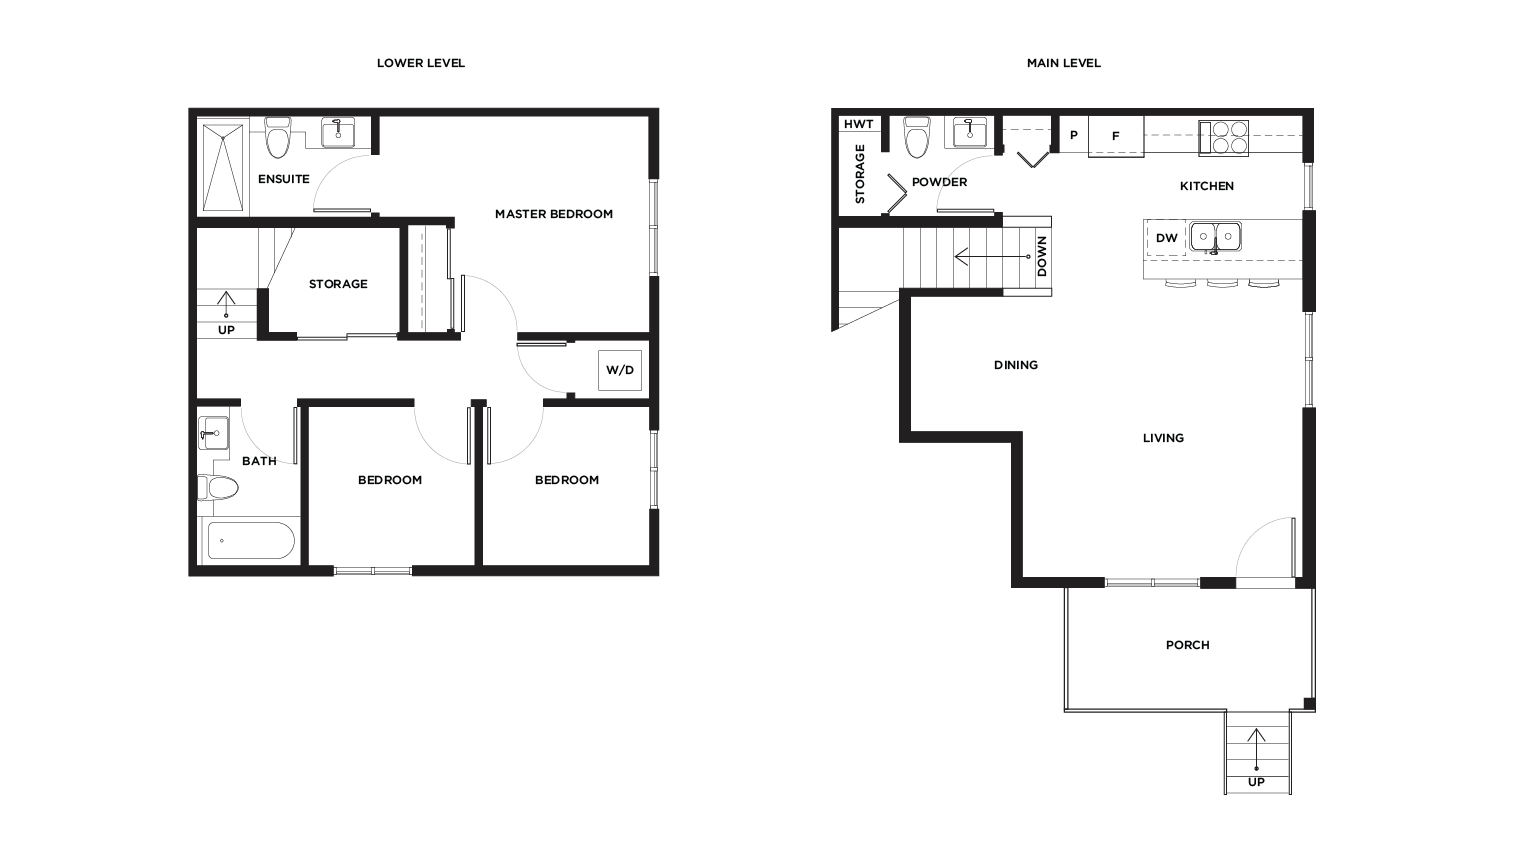 Ward B1/2 garden level floor plan for Vicini Homes Vancouver townhouses.